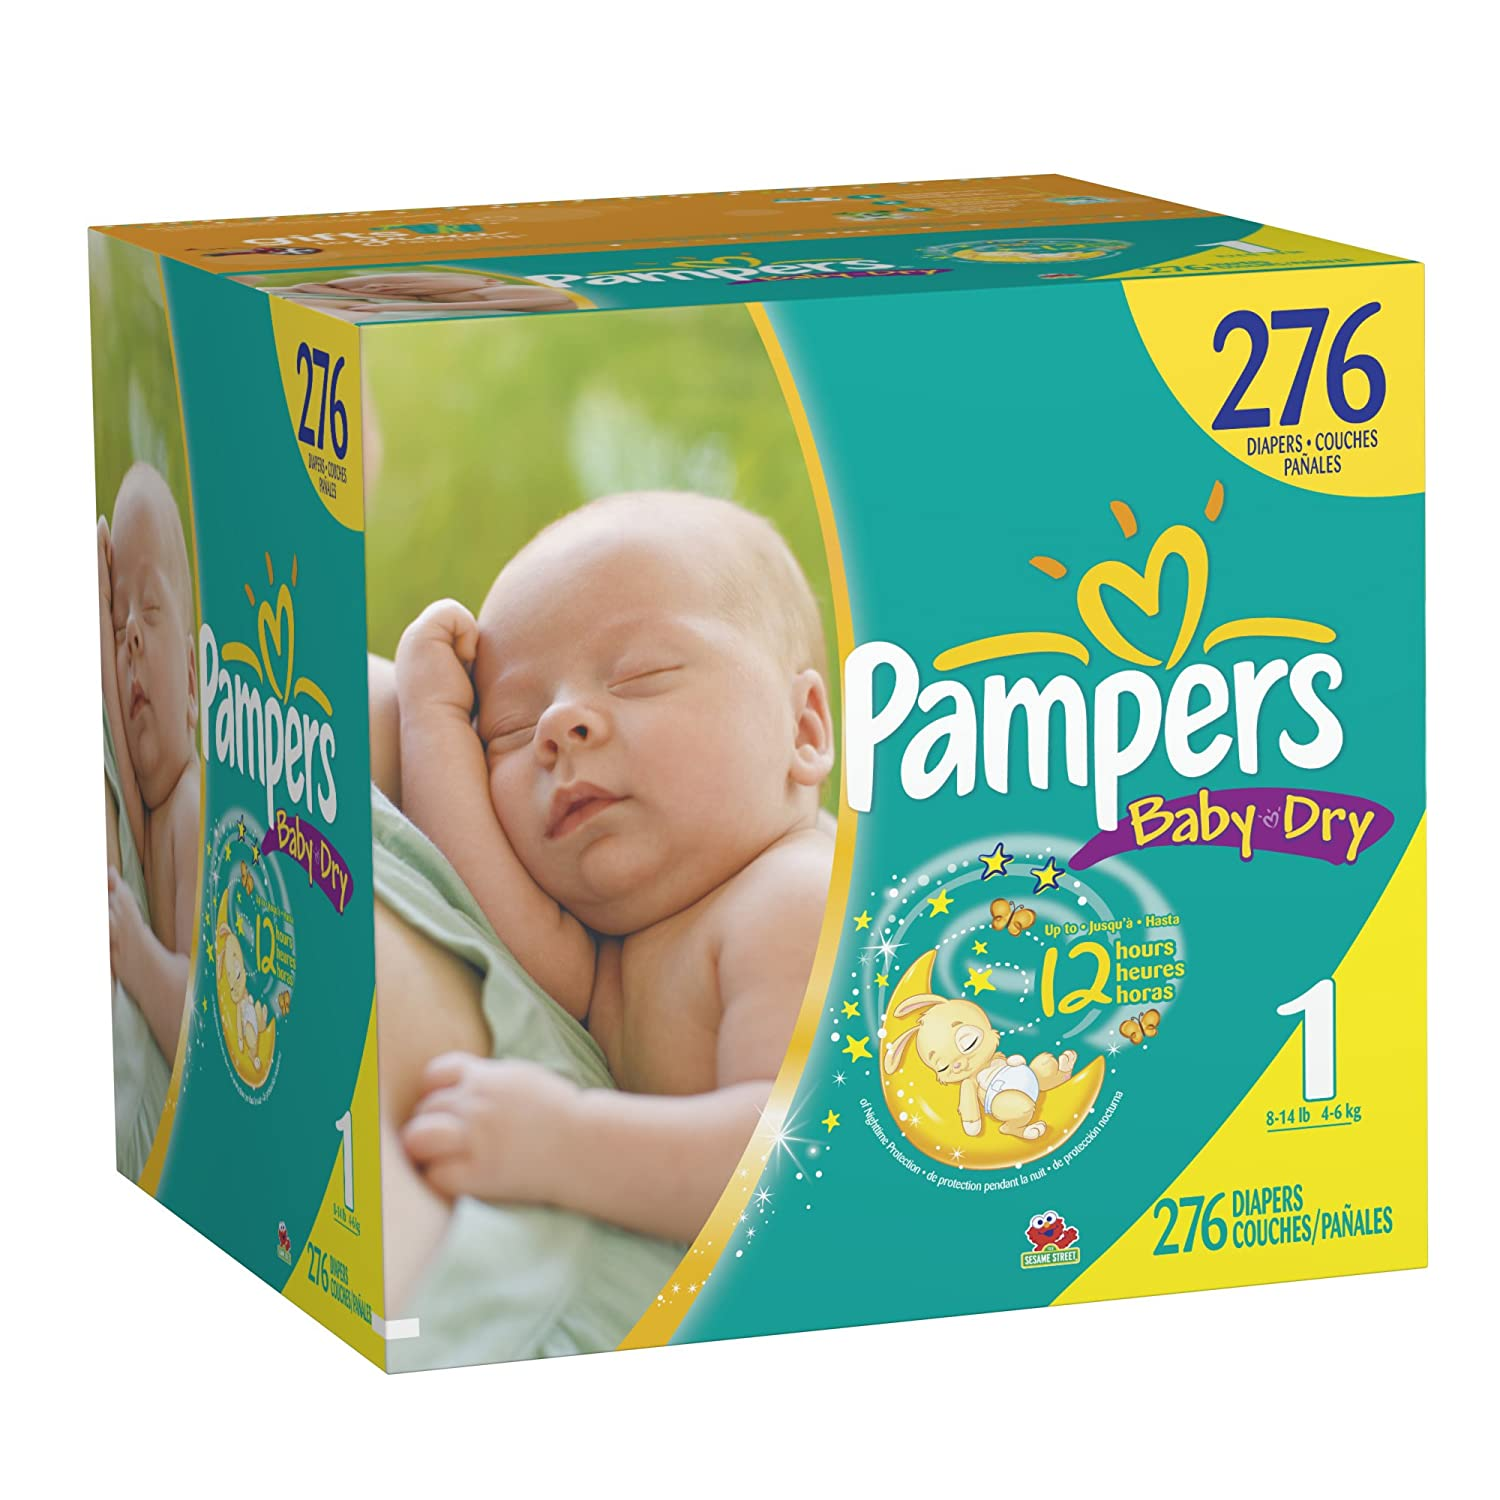 diapers Amazon.com: Pampers Baby Dry Diapers Economy Plus Pack Size 1, 276 Count:  Health & Personal Care